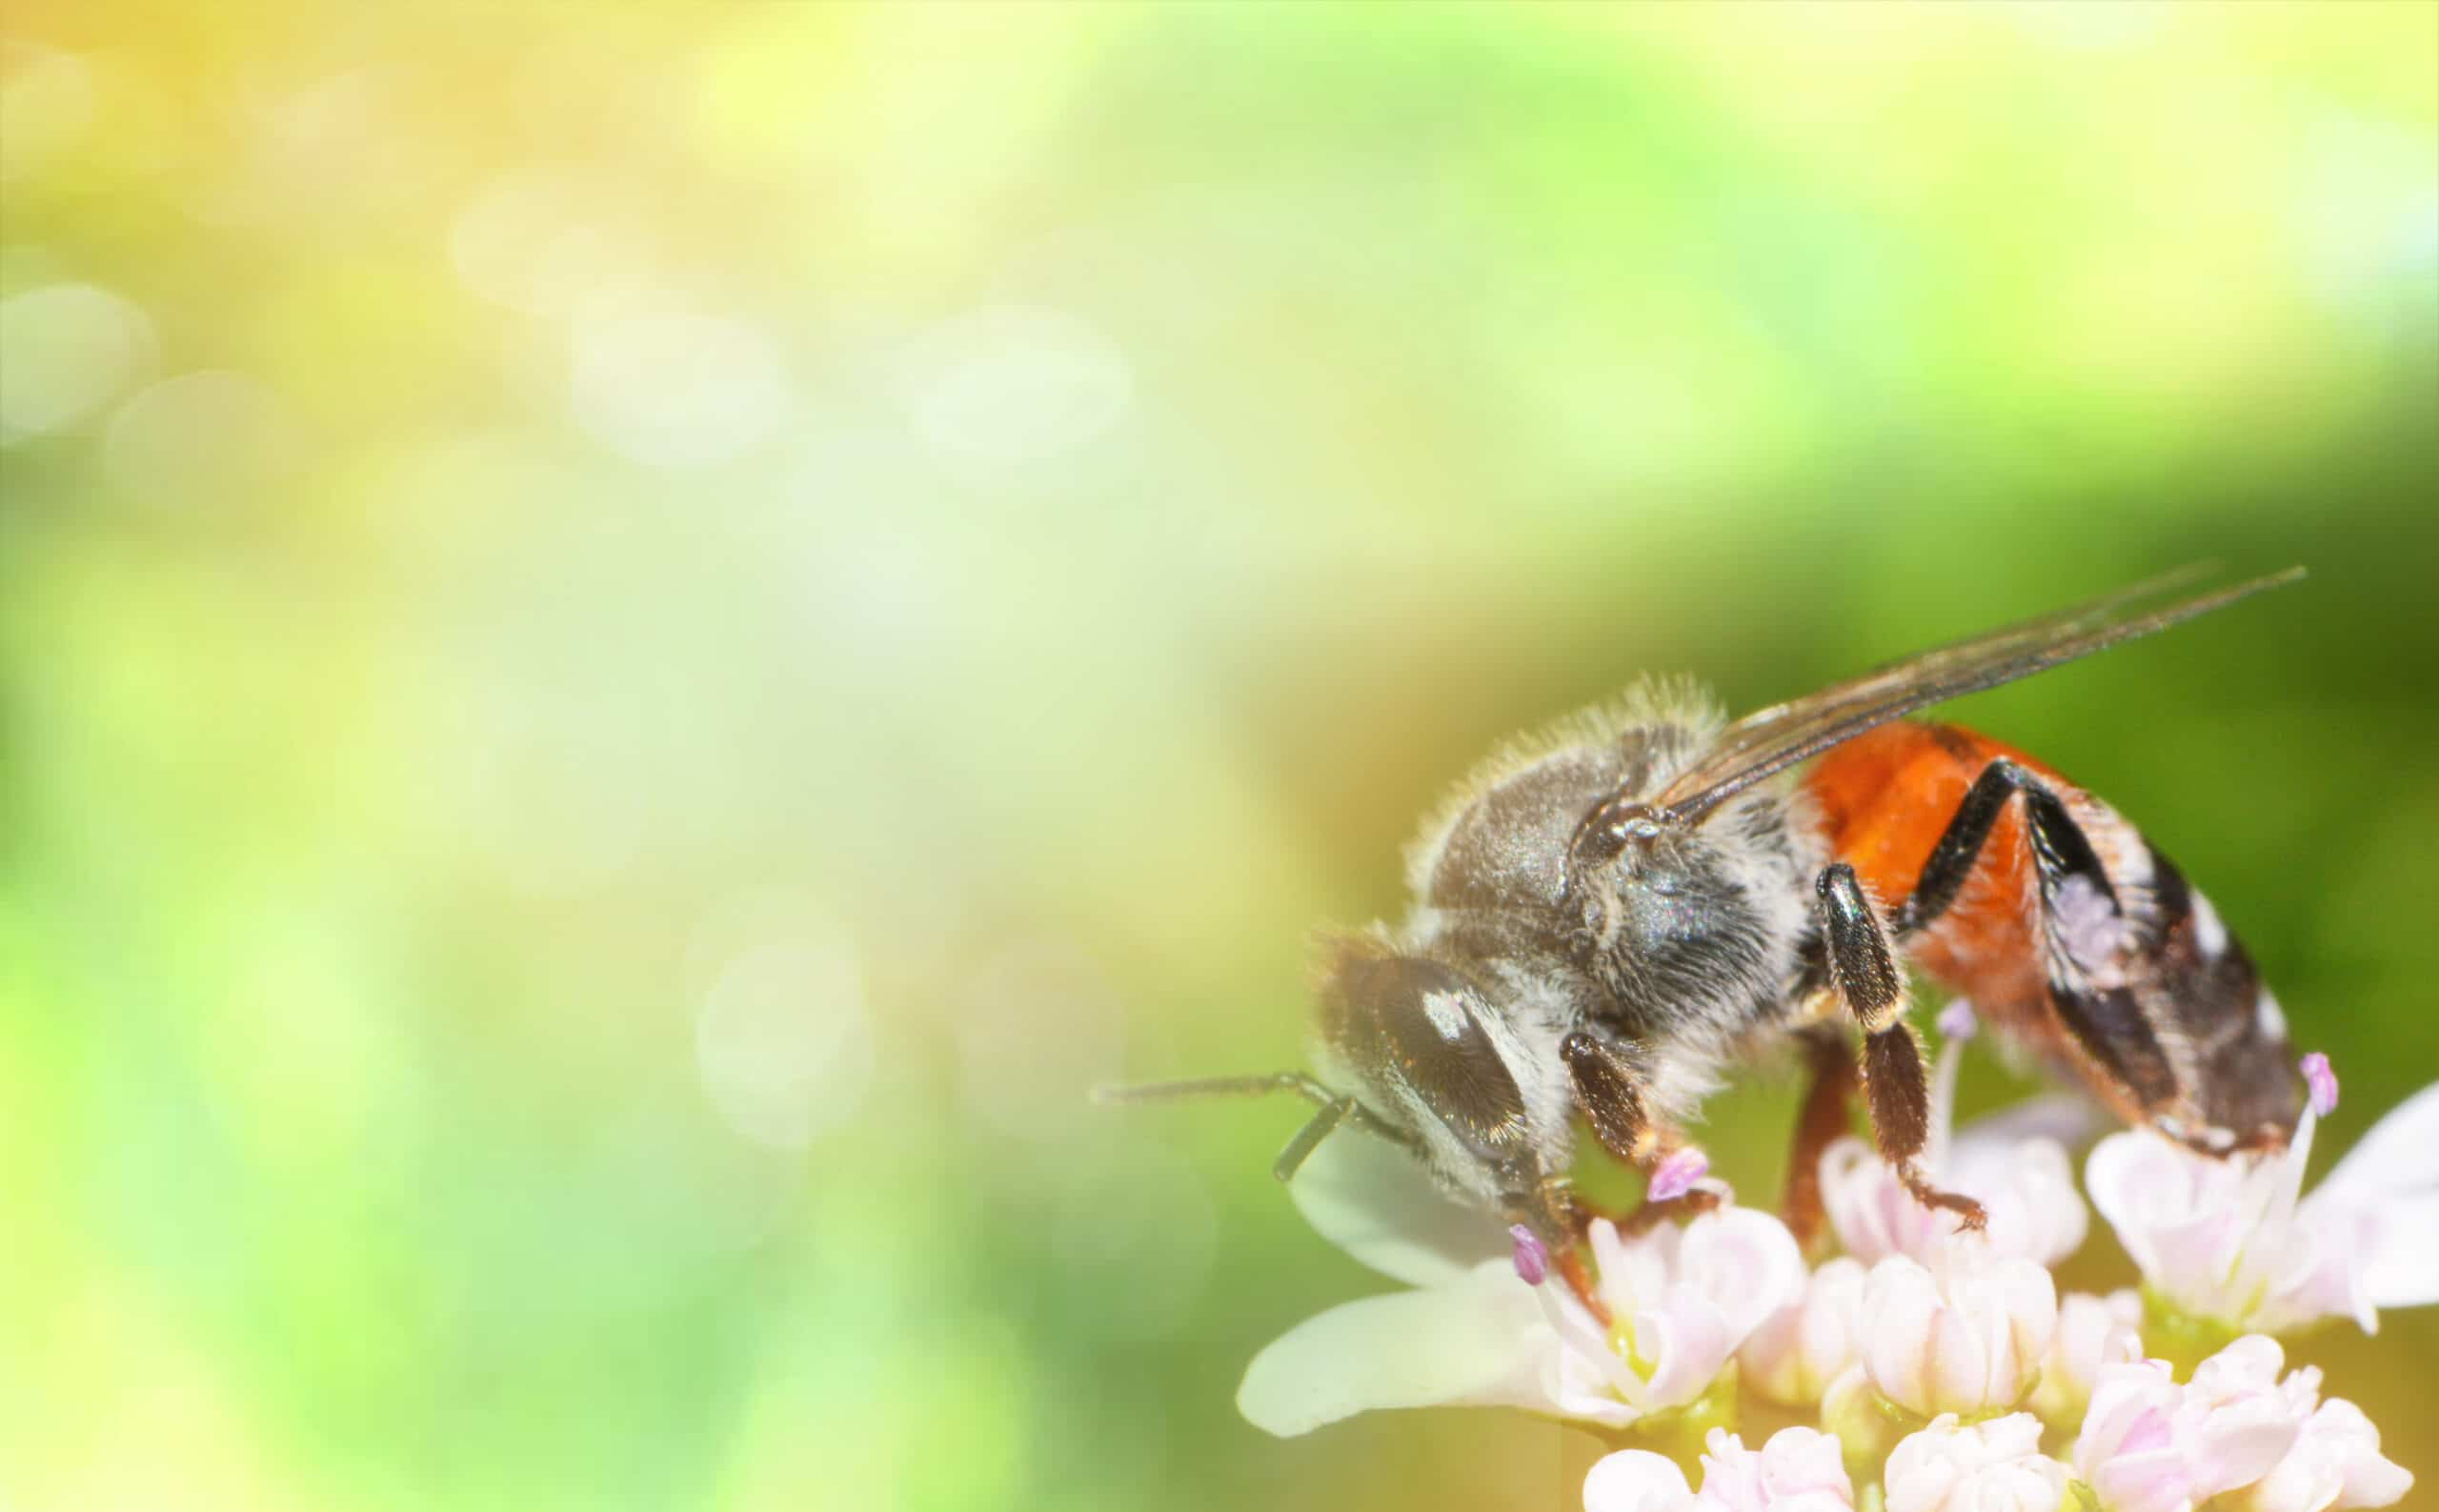 nature-green-yellow-background-abstract-nature-bright-bee-flower-bee-collects-spring-be